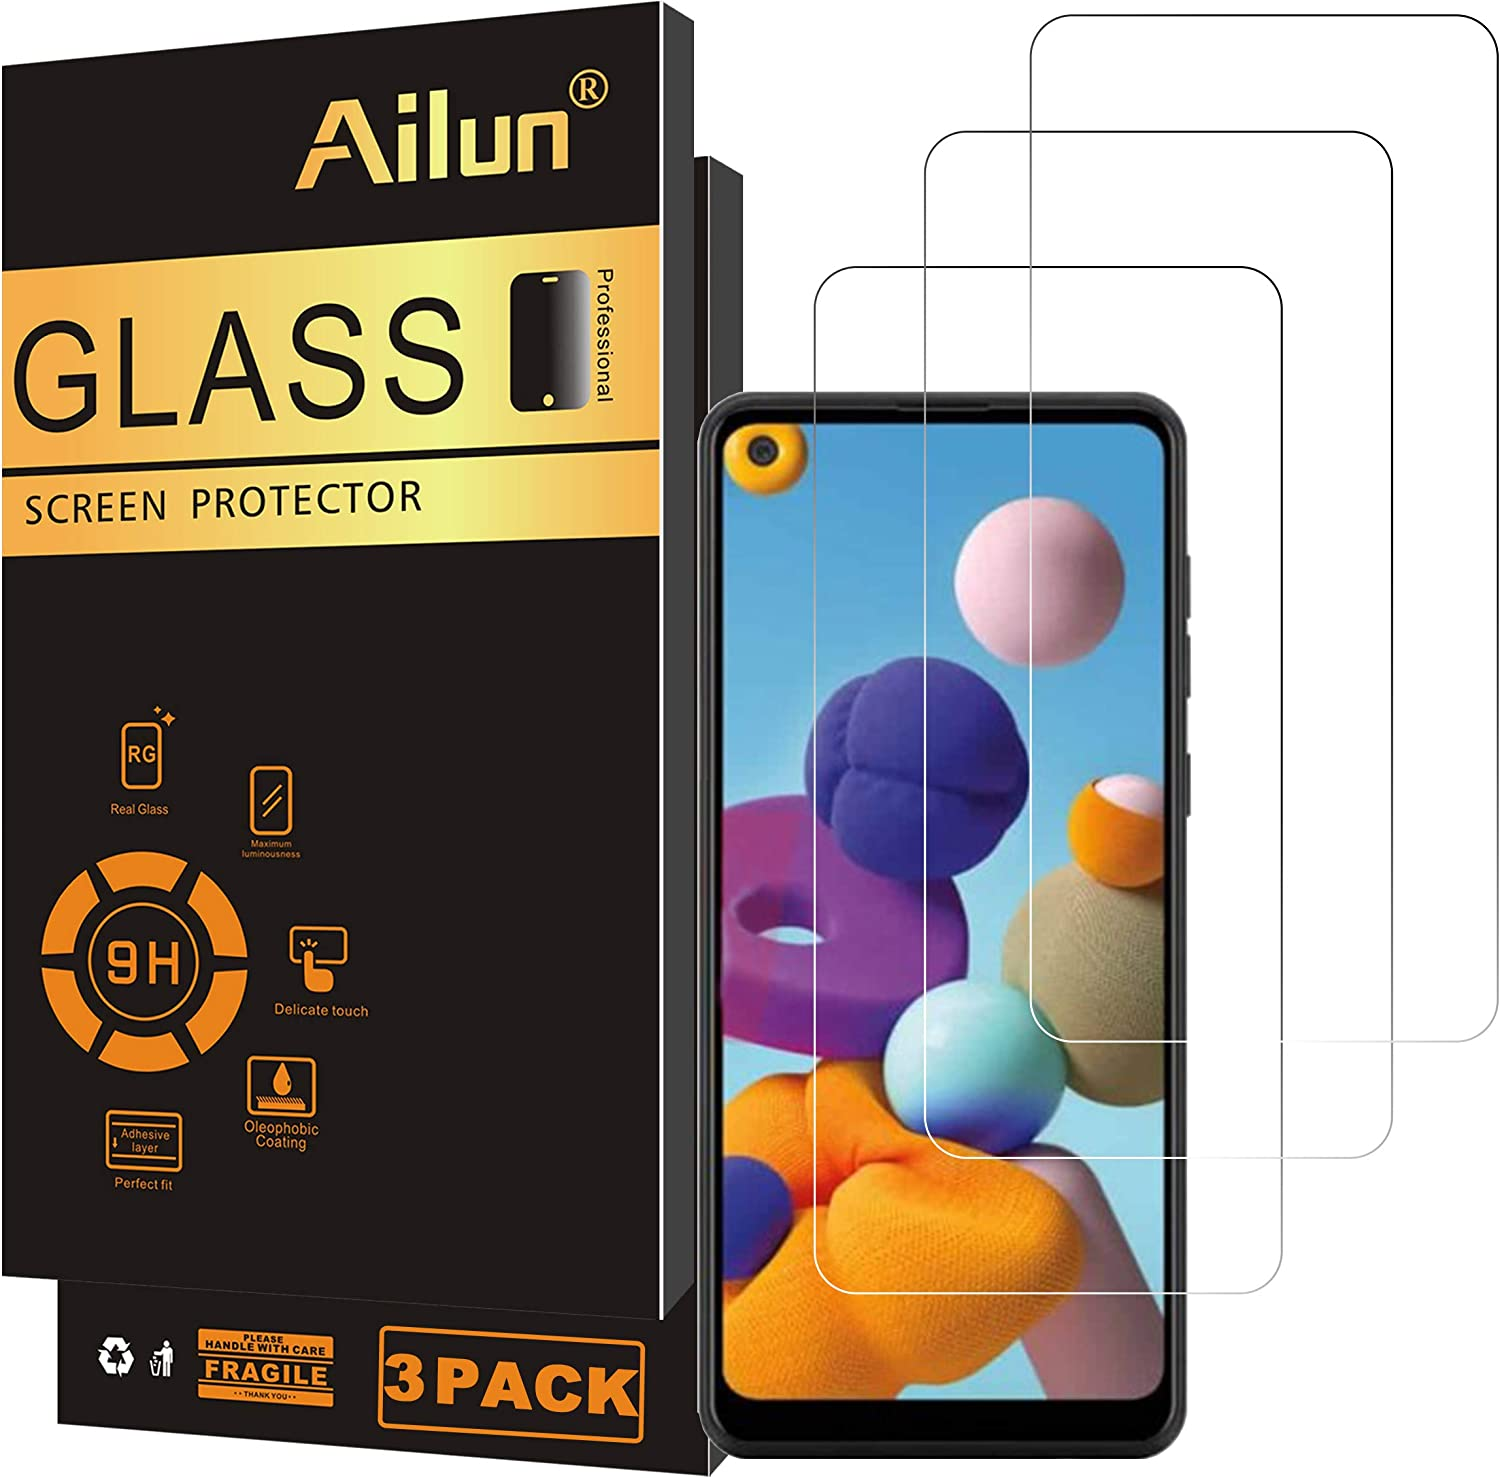 Ailun Screen Protector for Galaxy A21 3 Pack Tempered Glass Ultra Clear Anti-Scratch Case Friendly